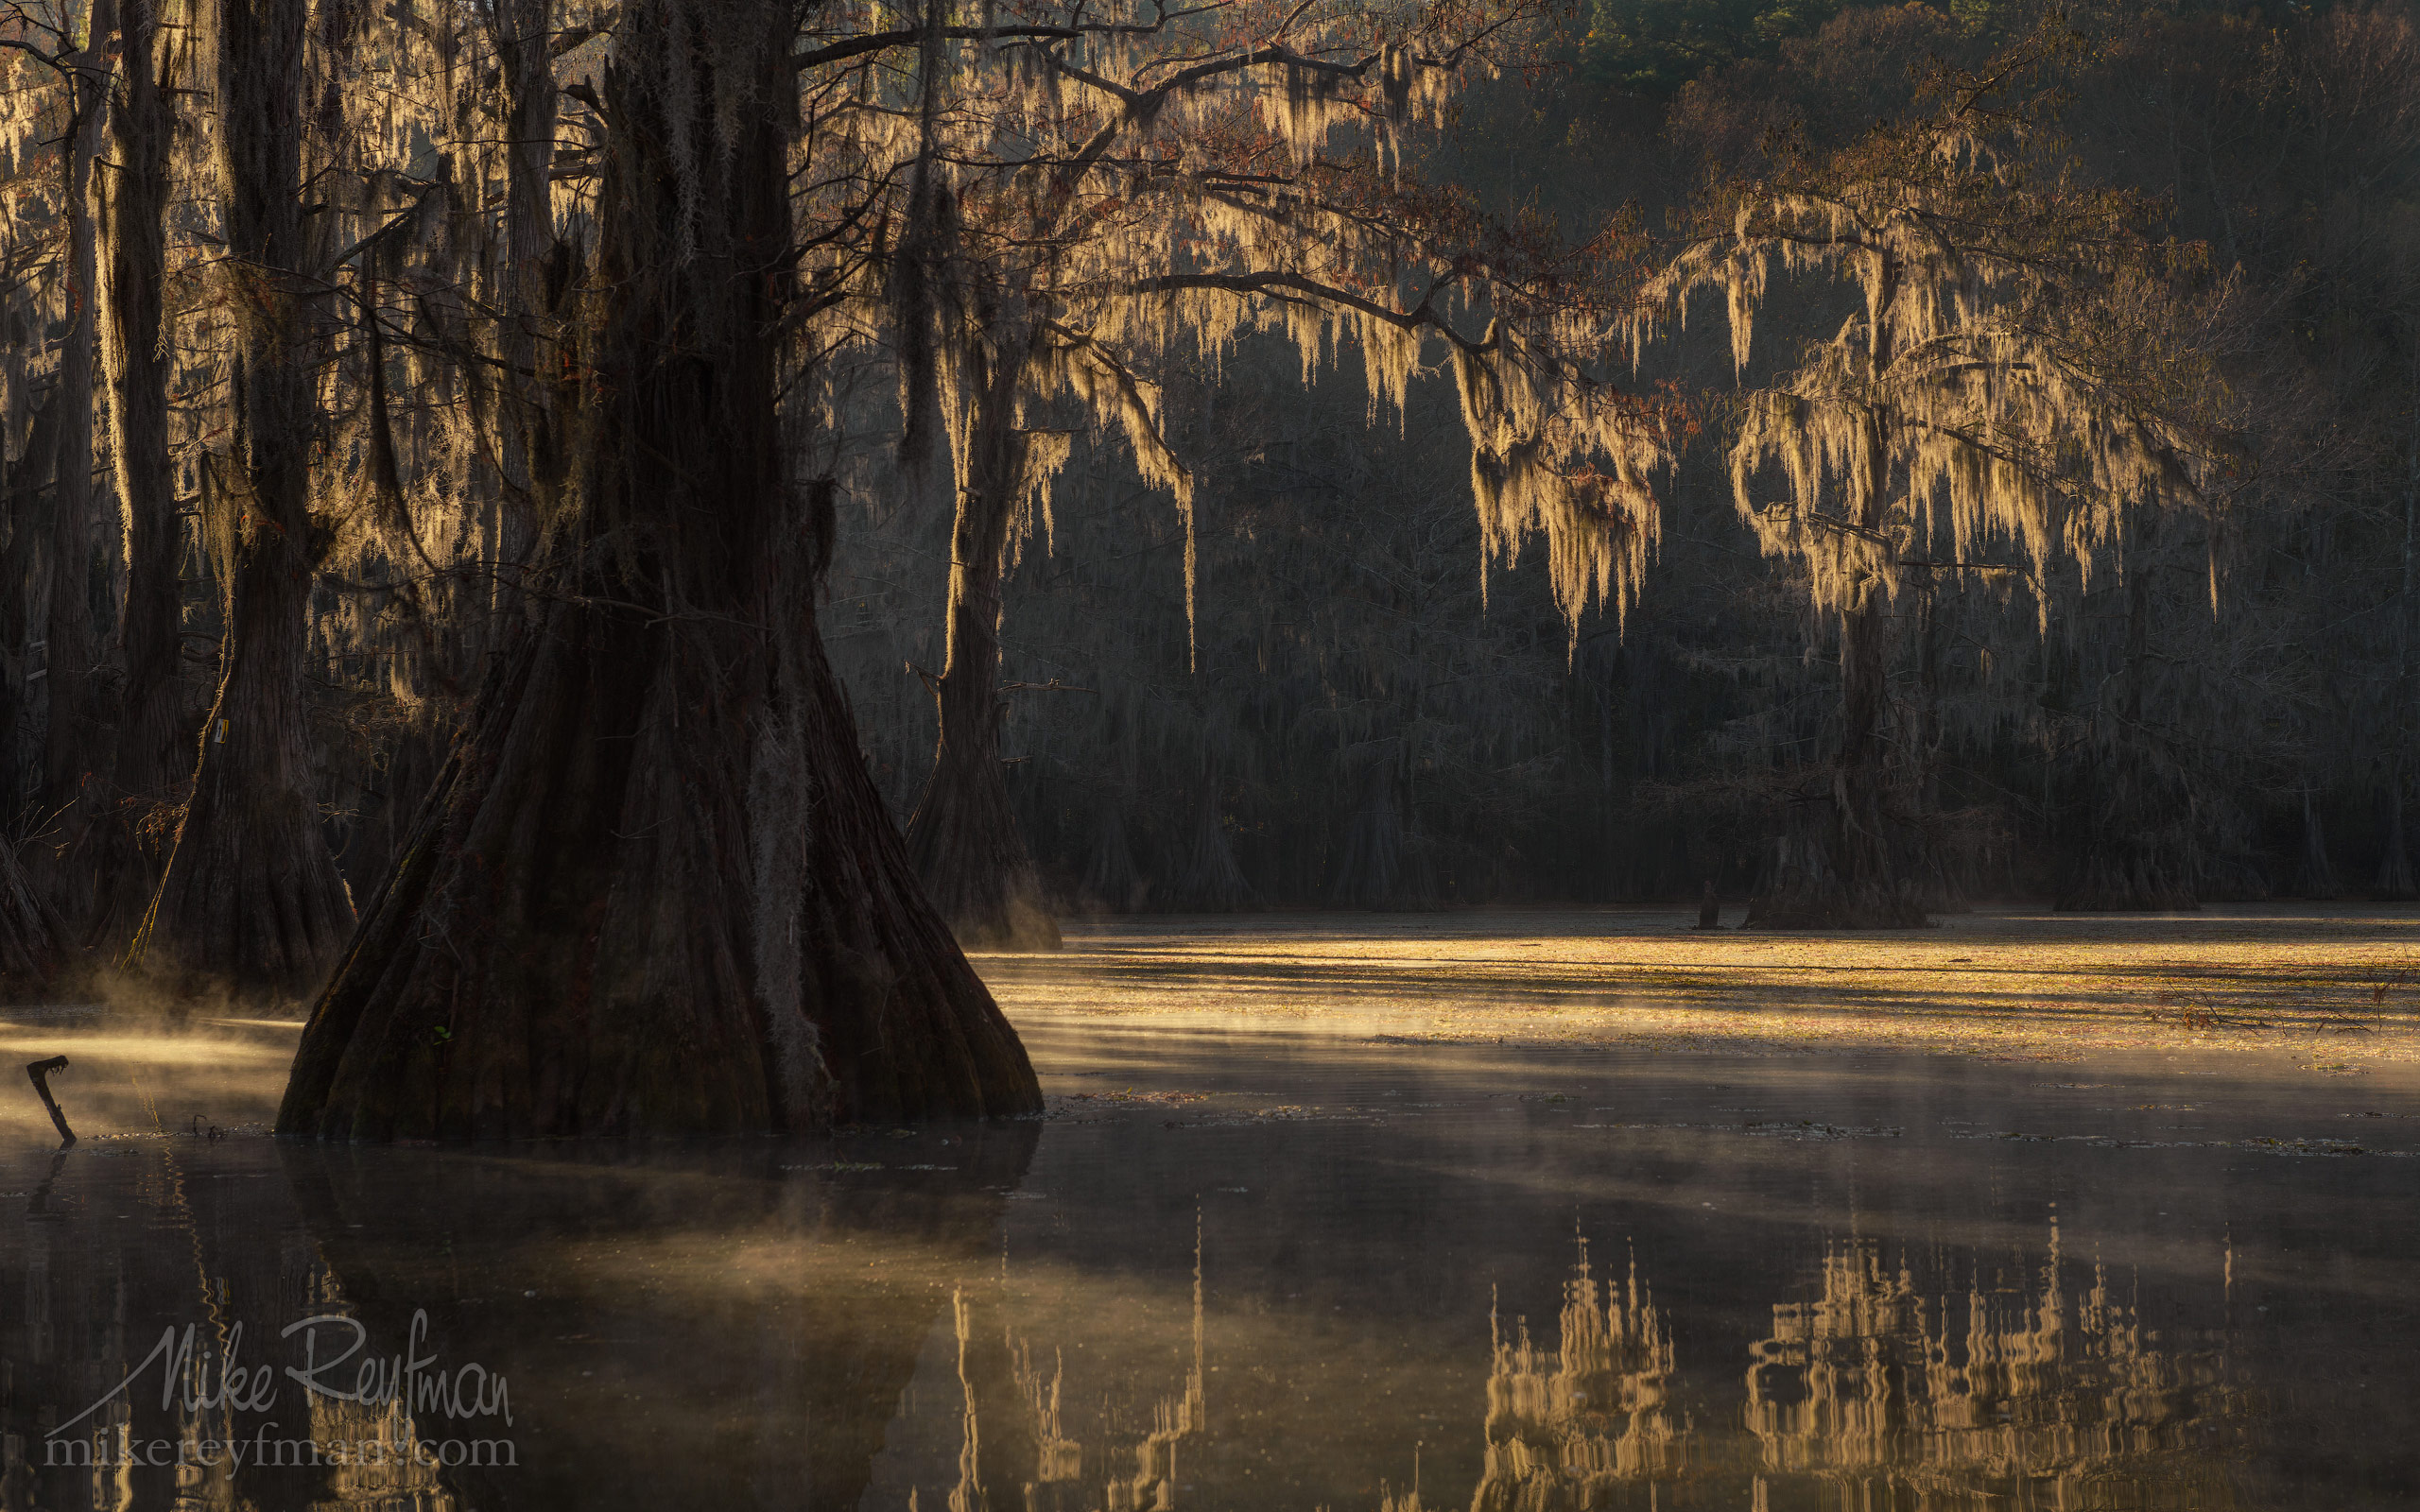 Bald Cypress trees in the swamp. Foggy morning on Caddo Lake, Texas, US 042-LT1-50A3641.jpg - Bold Cypress and Tupelo Trees in the swamps of Atchafalaya River Basin. Caddo, Martin and Fousse Lakes. Texas/Louisiana, USA. - Mike Reyfman Photography